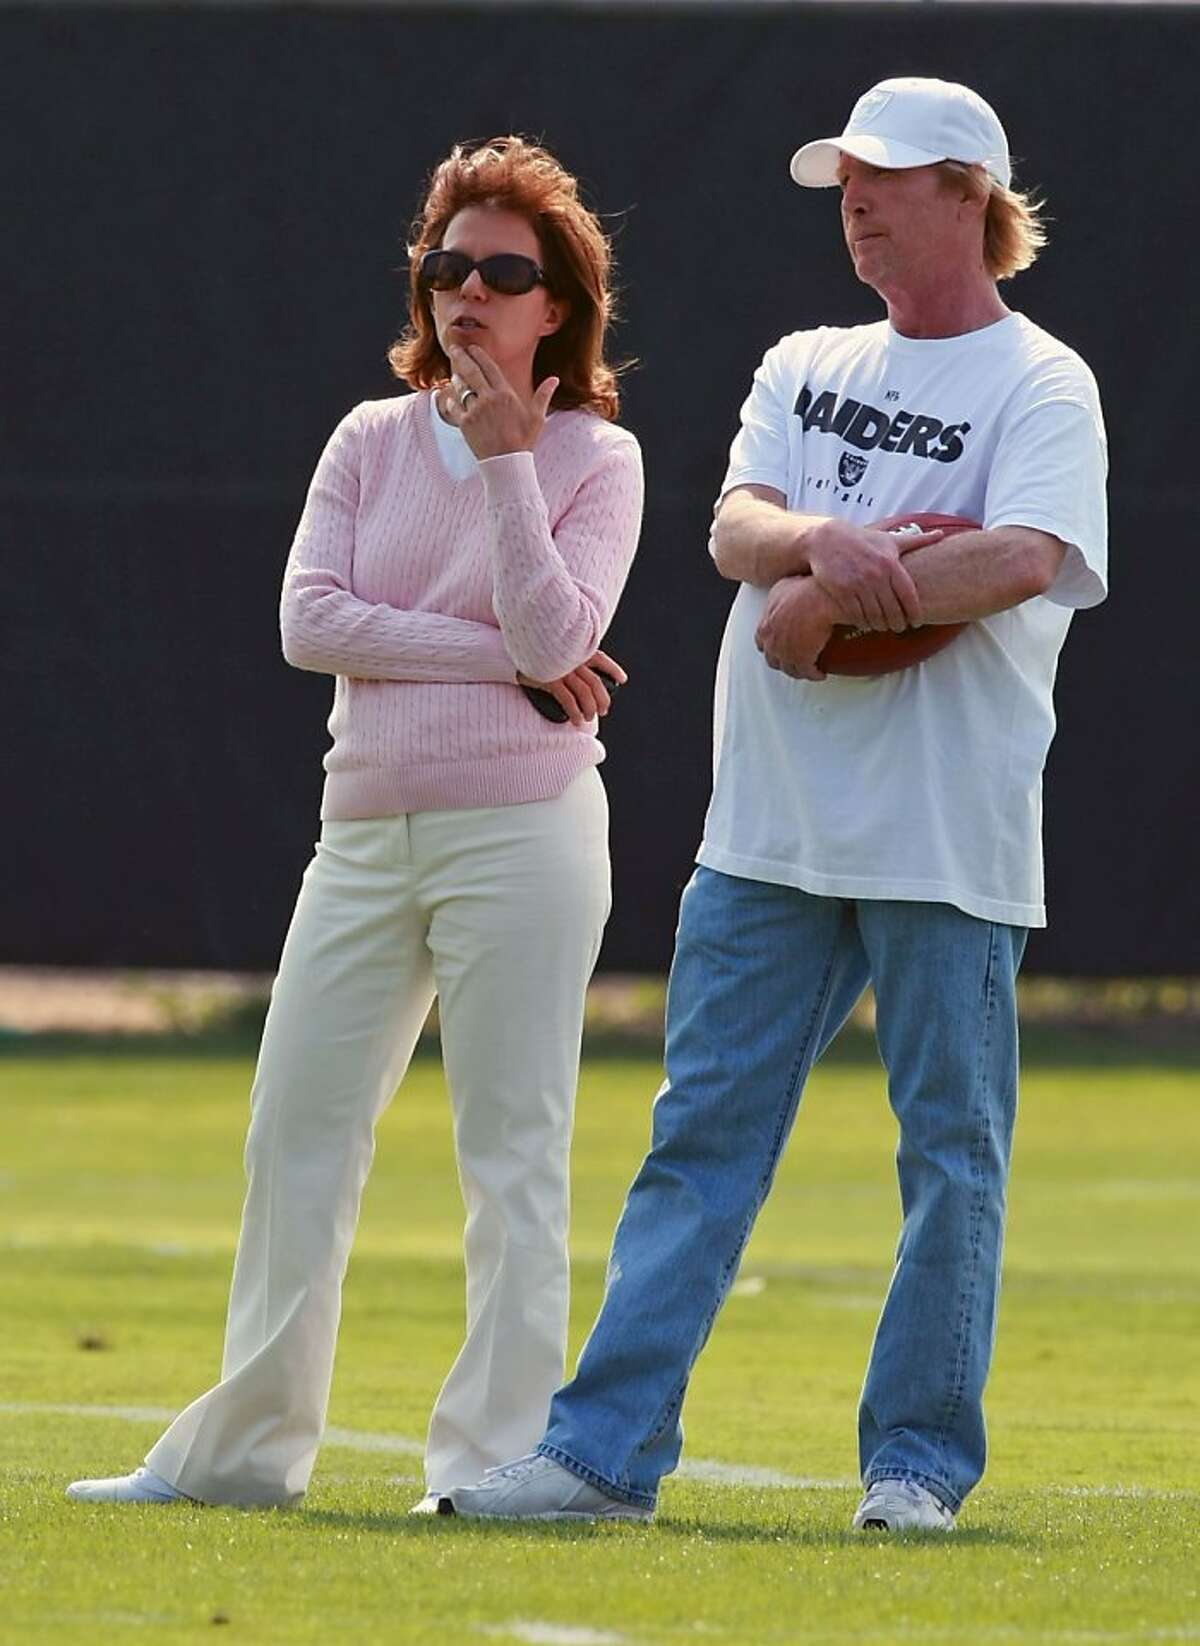 Oakland Raiders CEO Amy Trask talks with Mark Davis son og Raiders owner Al Davis at the Raiders training camp in Napa Thursday July 24, 2008. Thursday July 24, 2008. Photo by Lance Iversen / The Chronicle Ran on: 06-03-2009 Amy Trask Ran on: 06-03-2009 Amy Trask